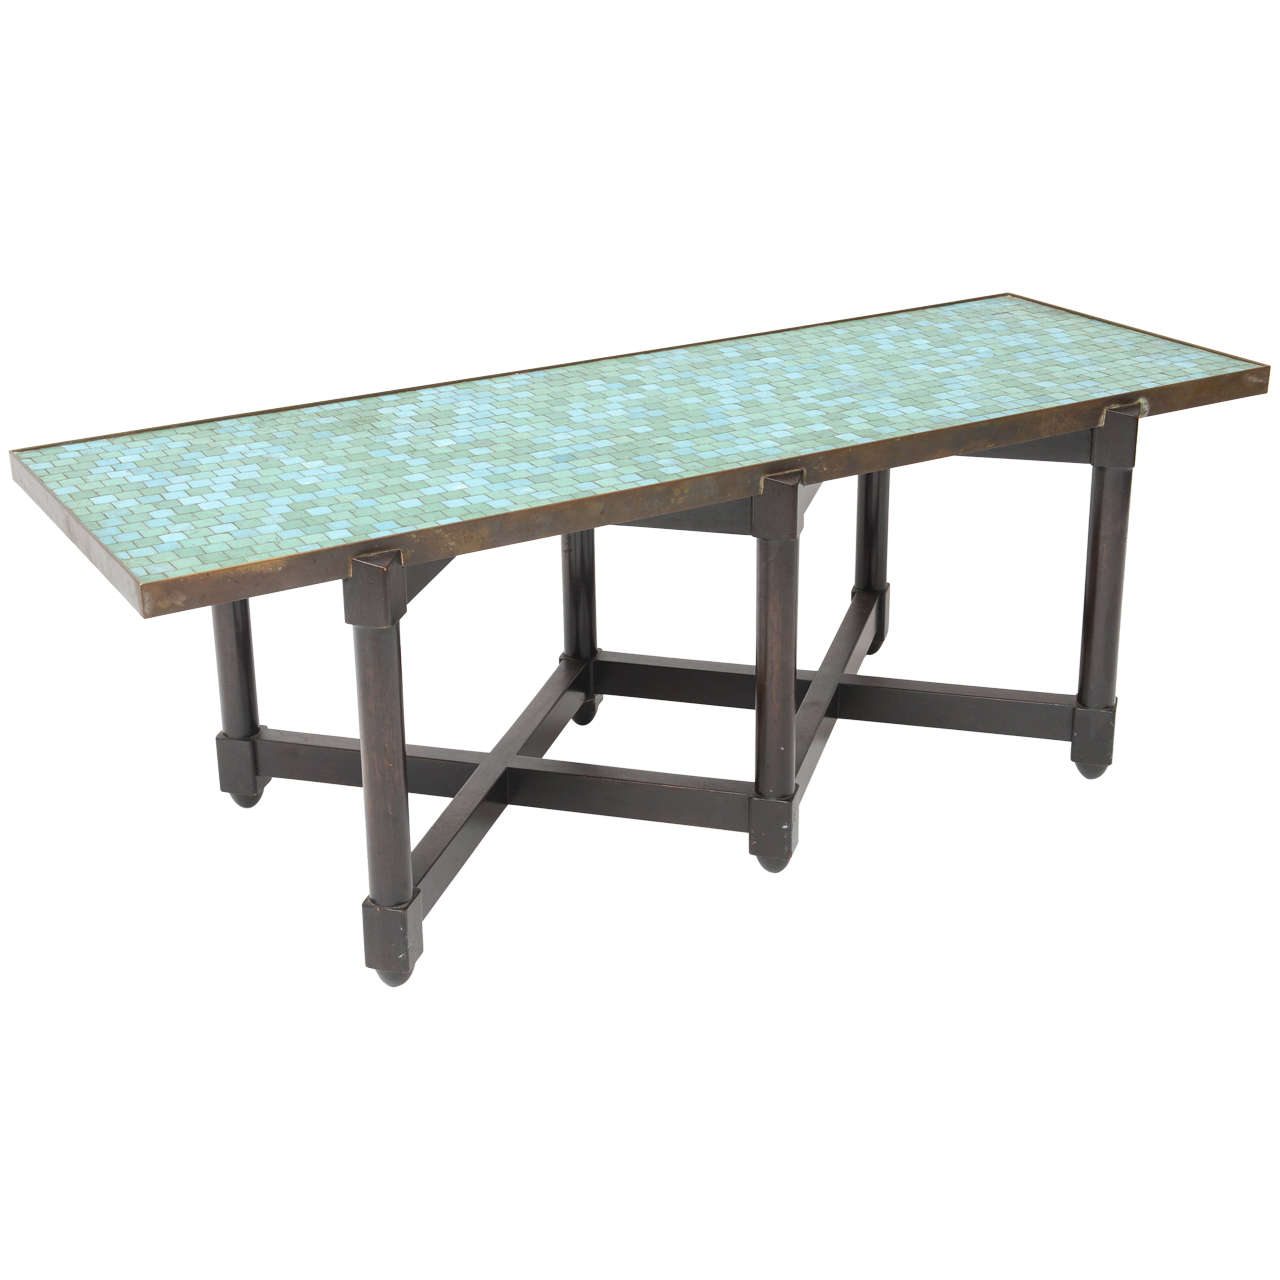 Edward Wormley Tile Top Campaign Coffee Table For Sale At 1stdibs